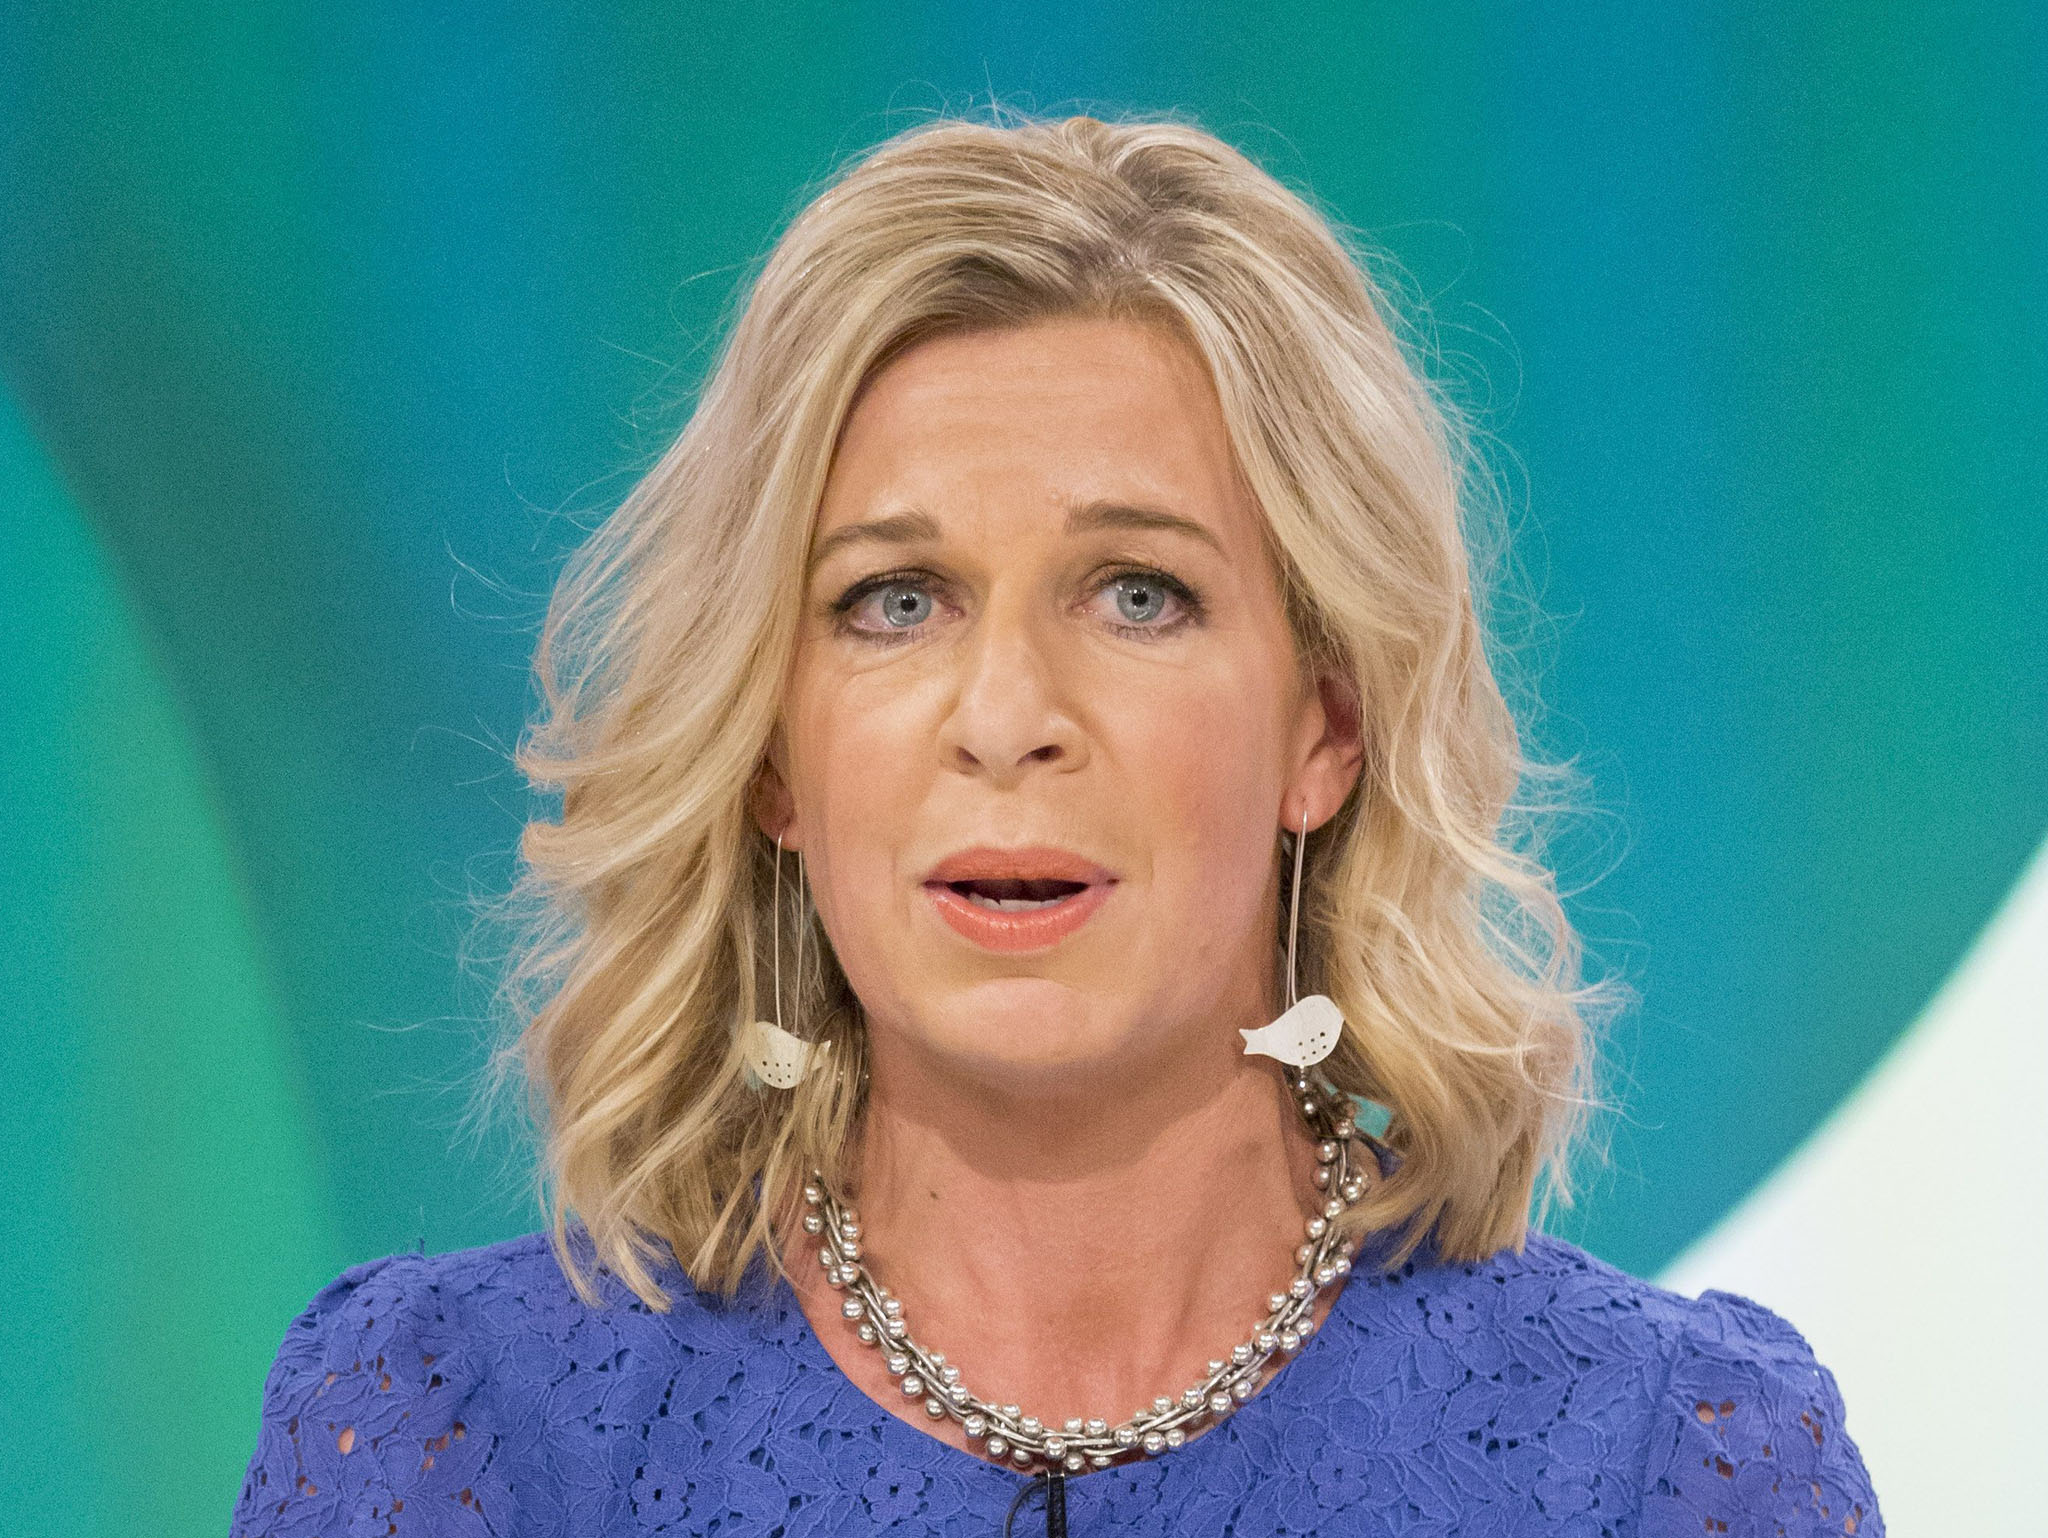 Muslim man knocked out while intruders spray-paint his home with Katie Hopkins tweets https://t.co/StEKPcnNcO https://t.co/Nj88n22E0q